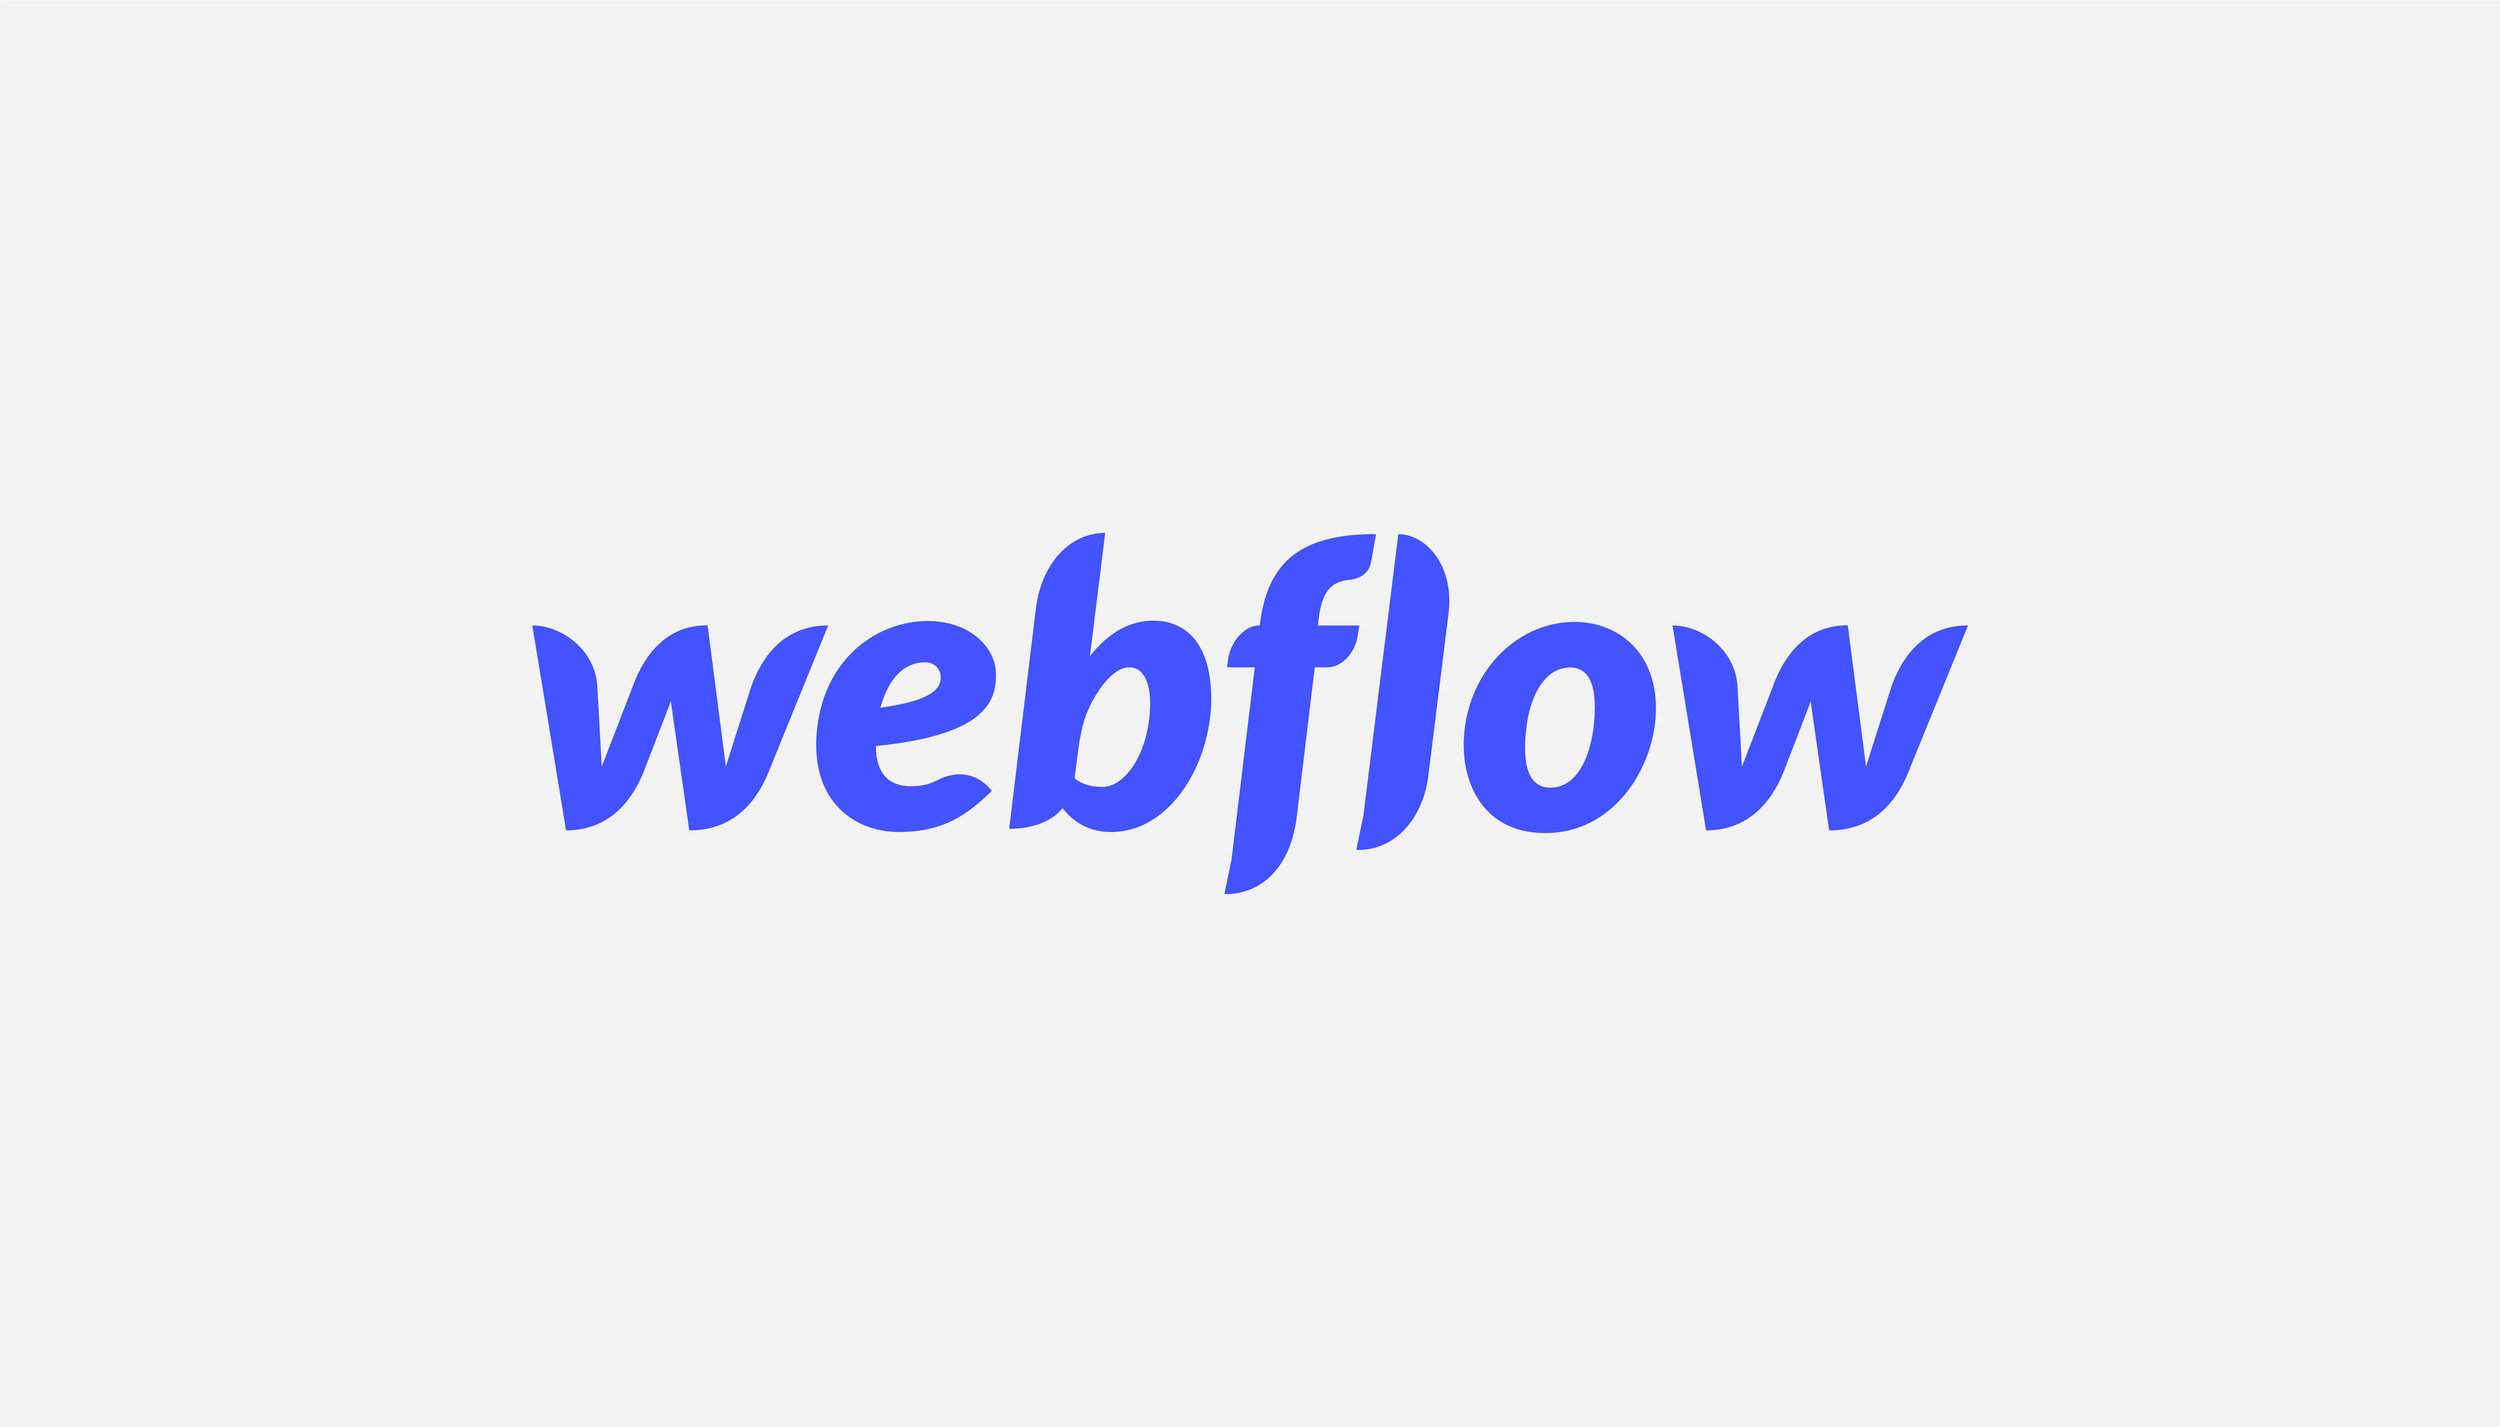 Webflow Partners - We also have 3+ years of experience in designing and developing websites on the Webflow platform.